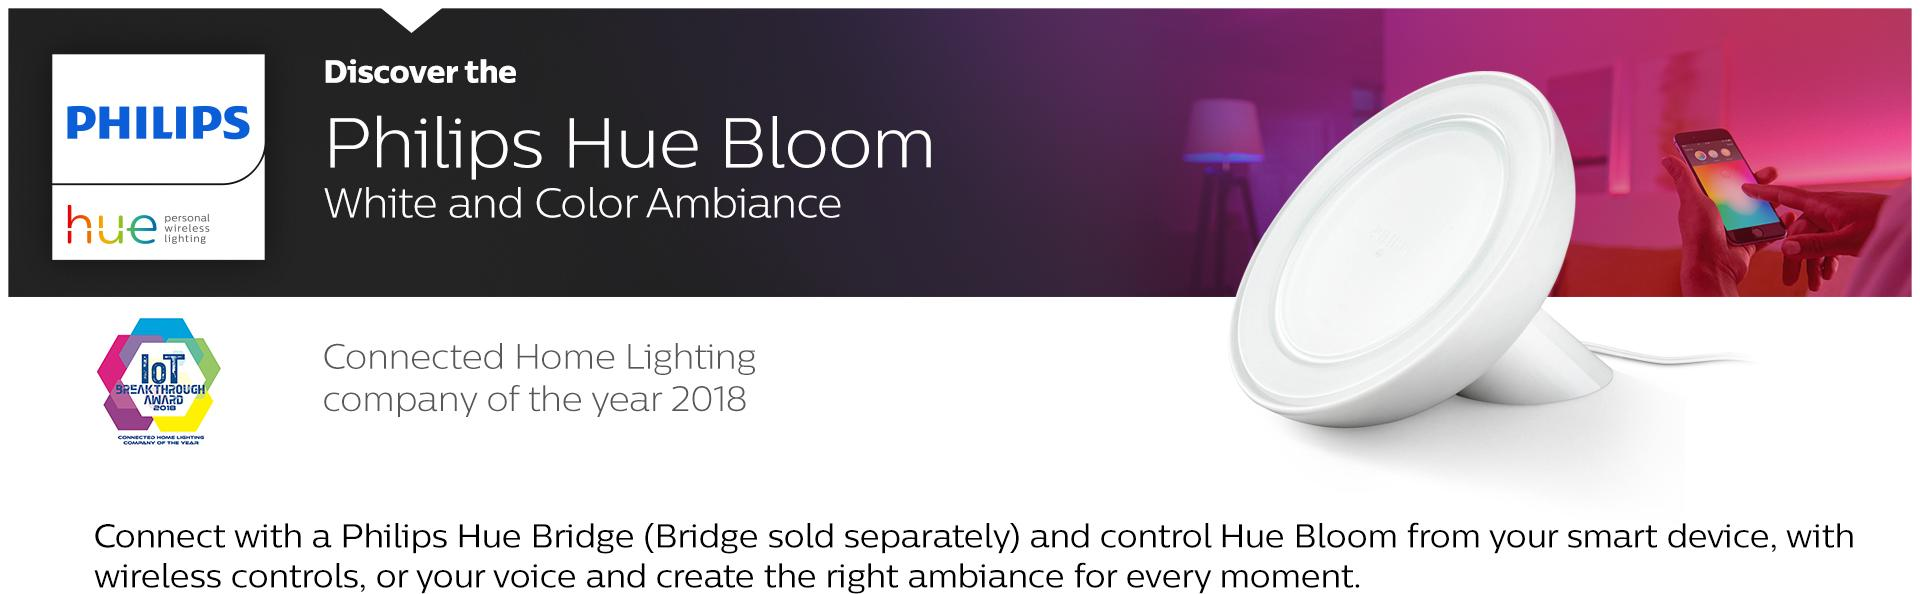 philips hue bloom dimmable led smart table lamp compatible with amazon alexa apple homekit and. Black Bedroom Furniture Sets. Home Design Ideas